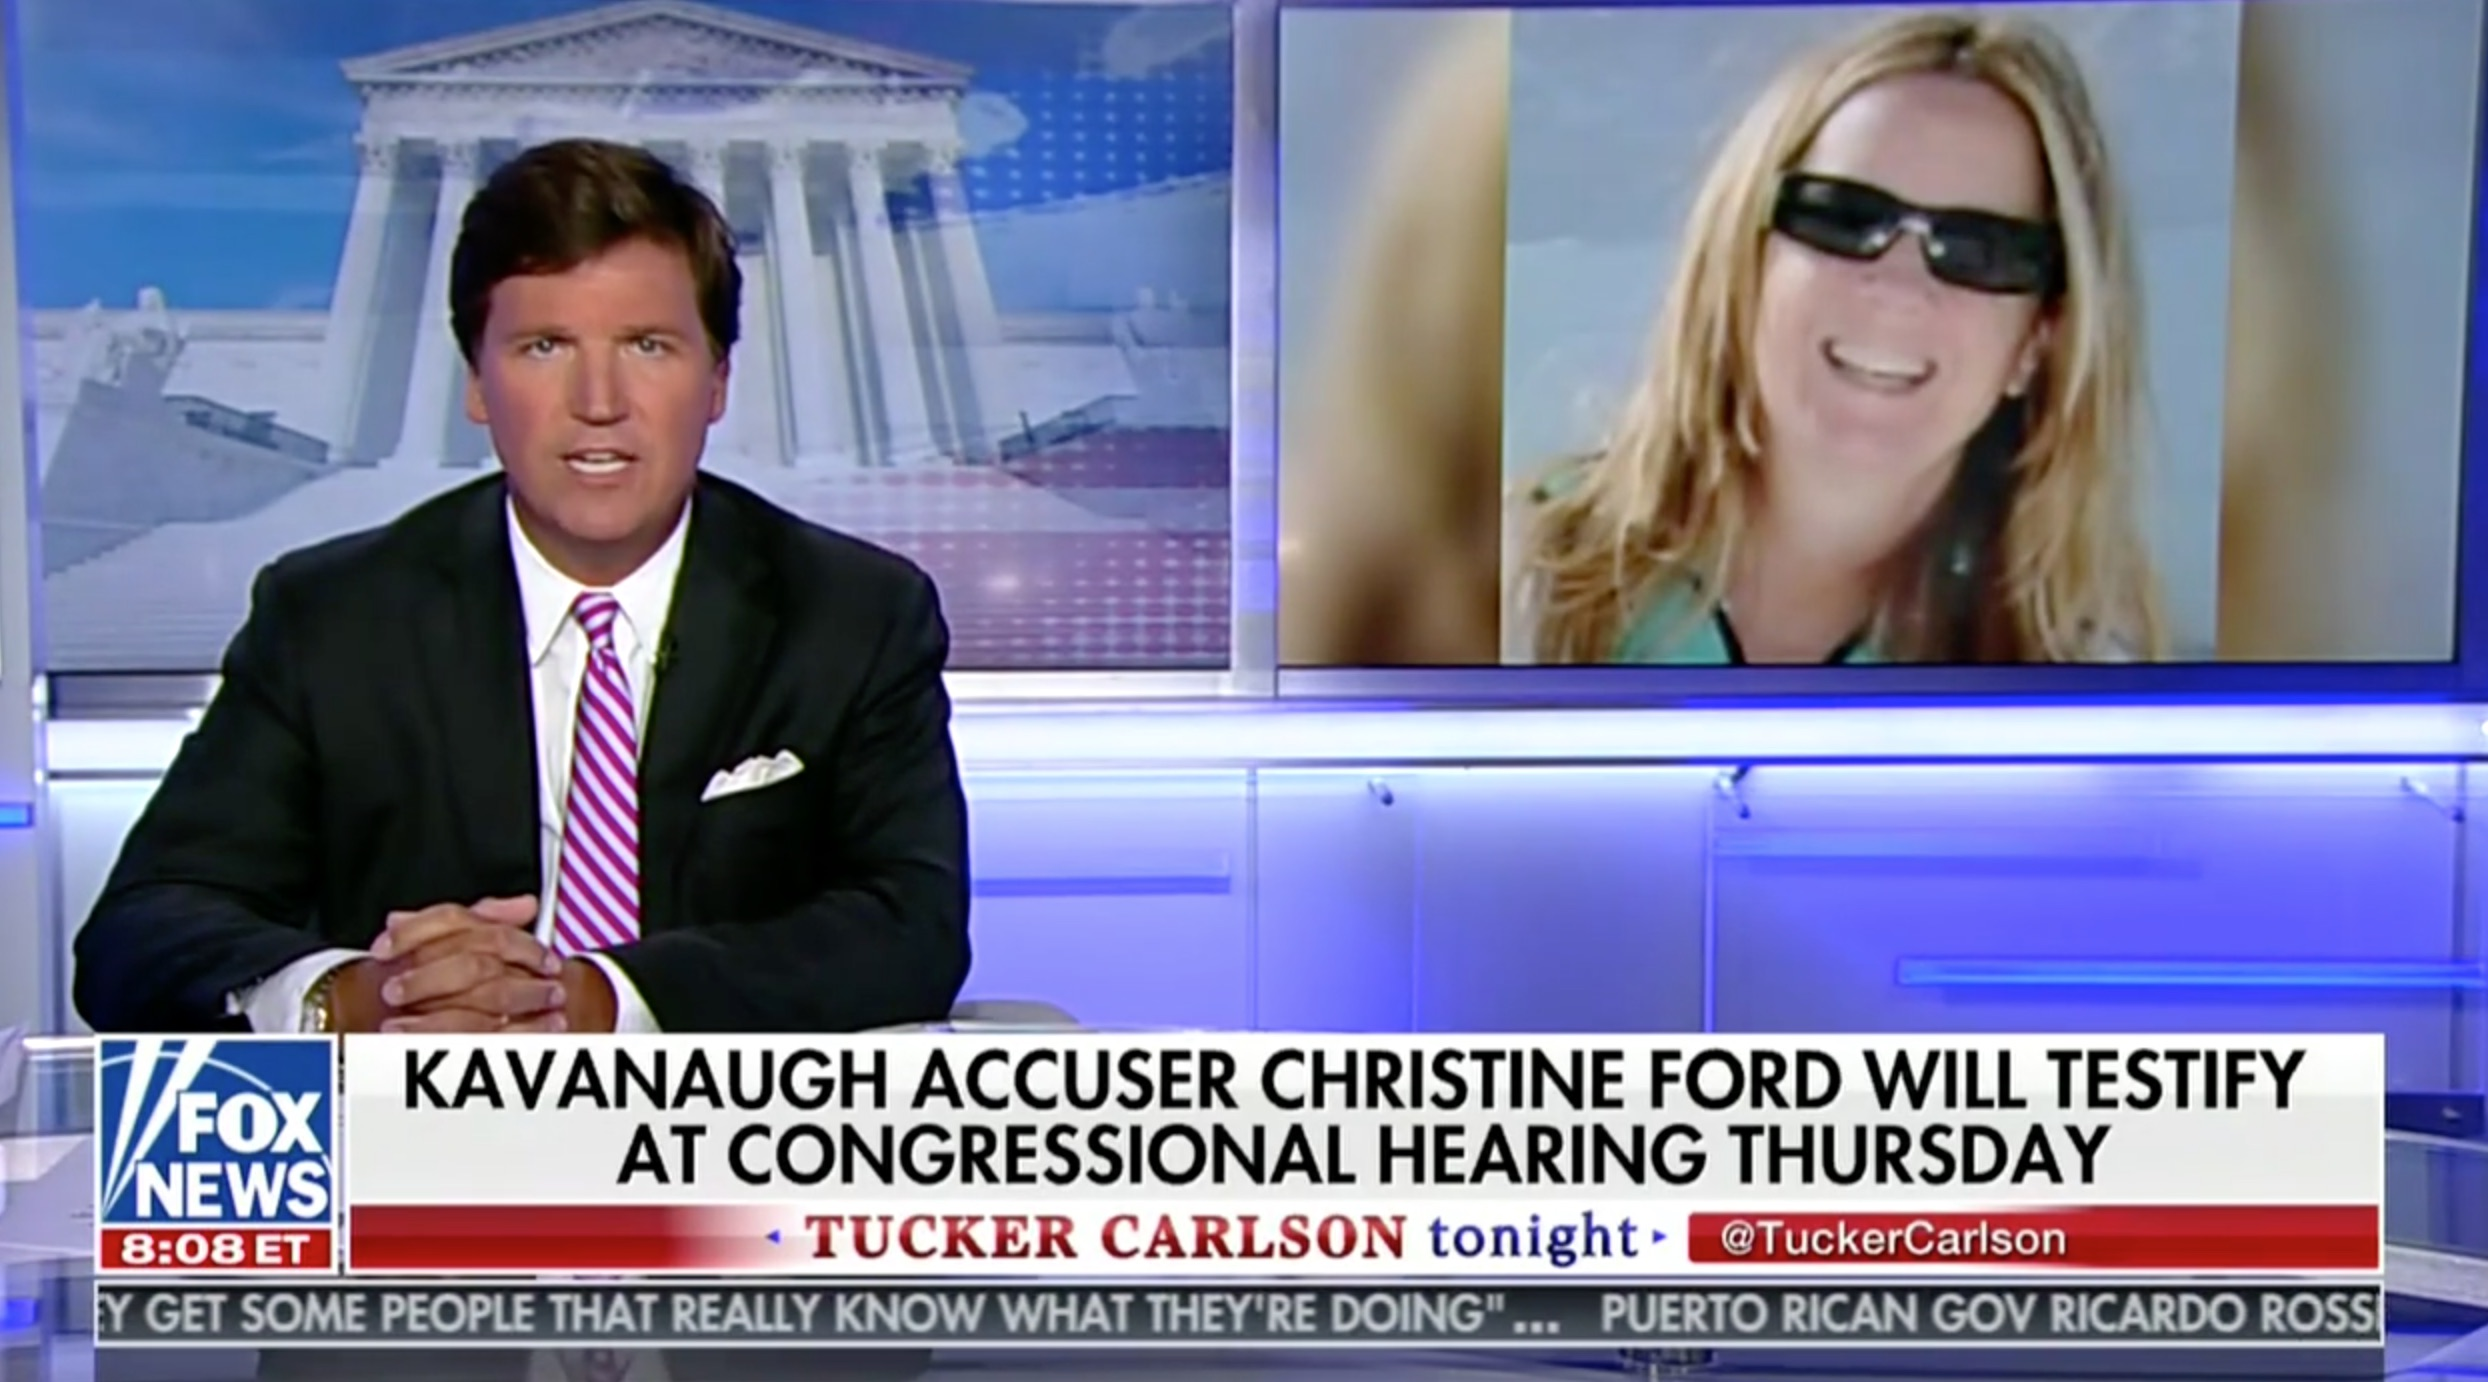 https://www.mediaite.com/online/tucker-carlson-is-christine-ford-claiming-a-fear-of-flying-just-to-delay-senate-hearing/